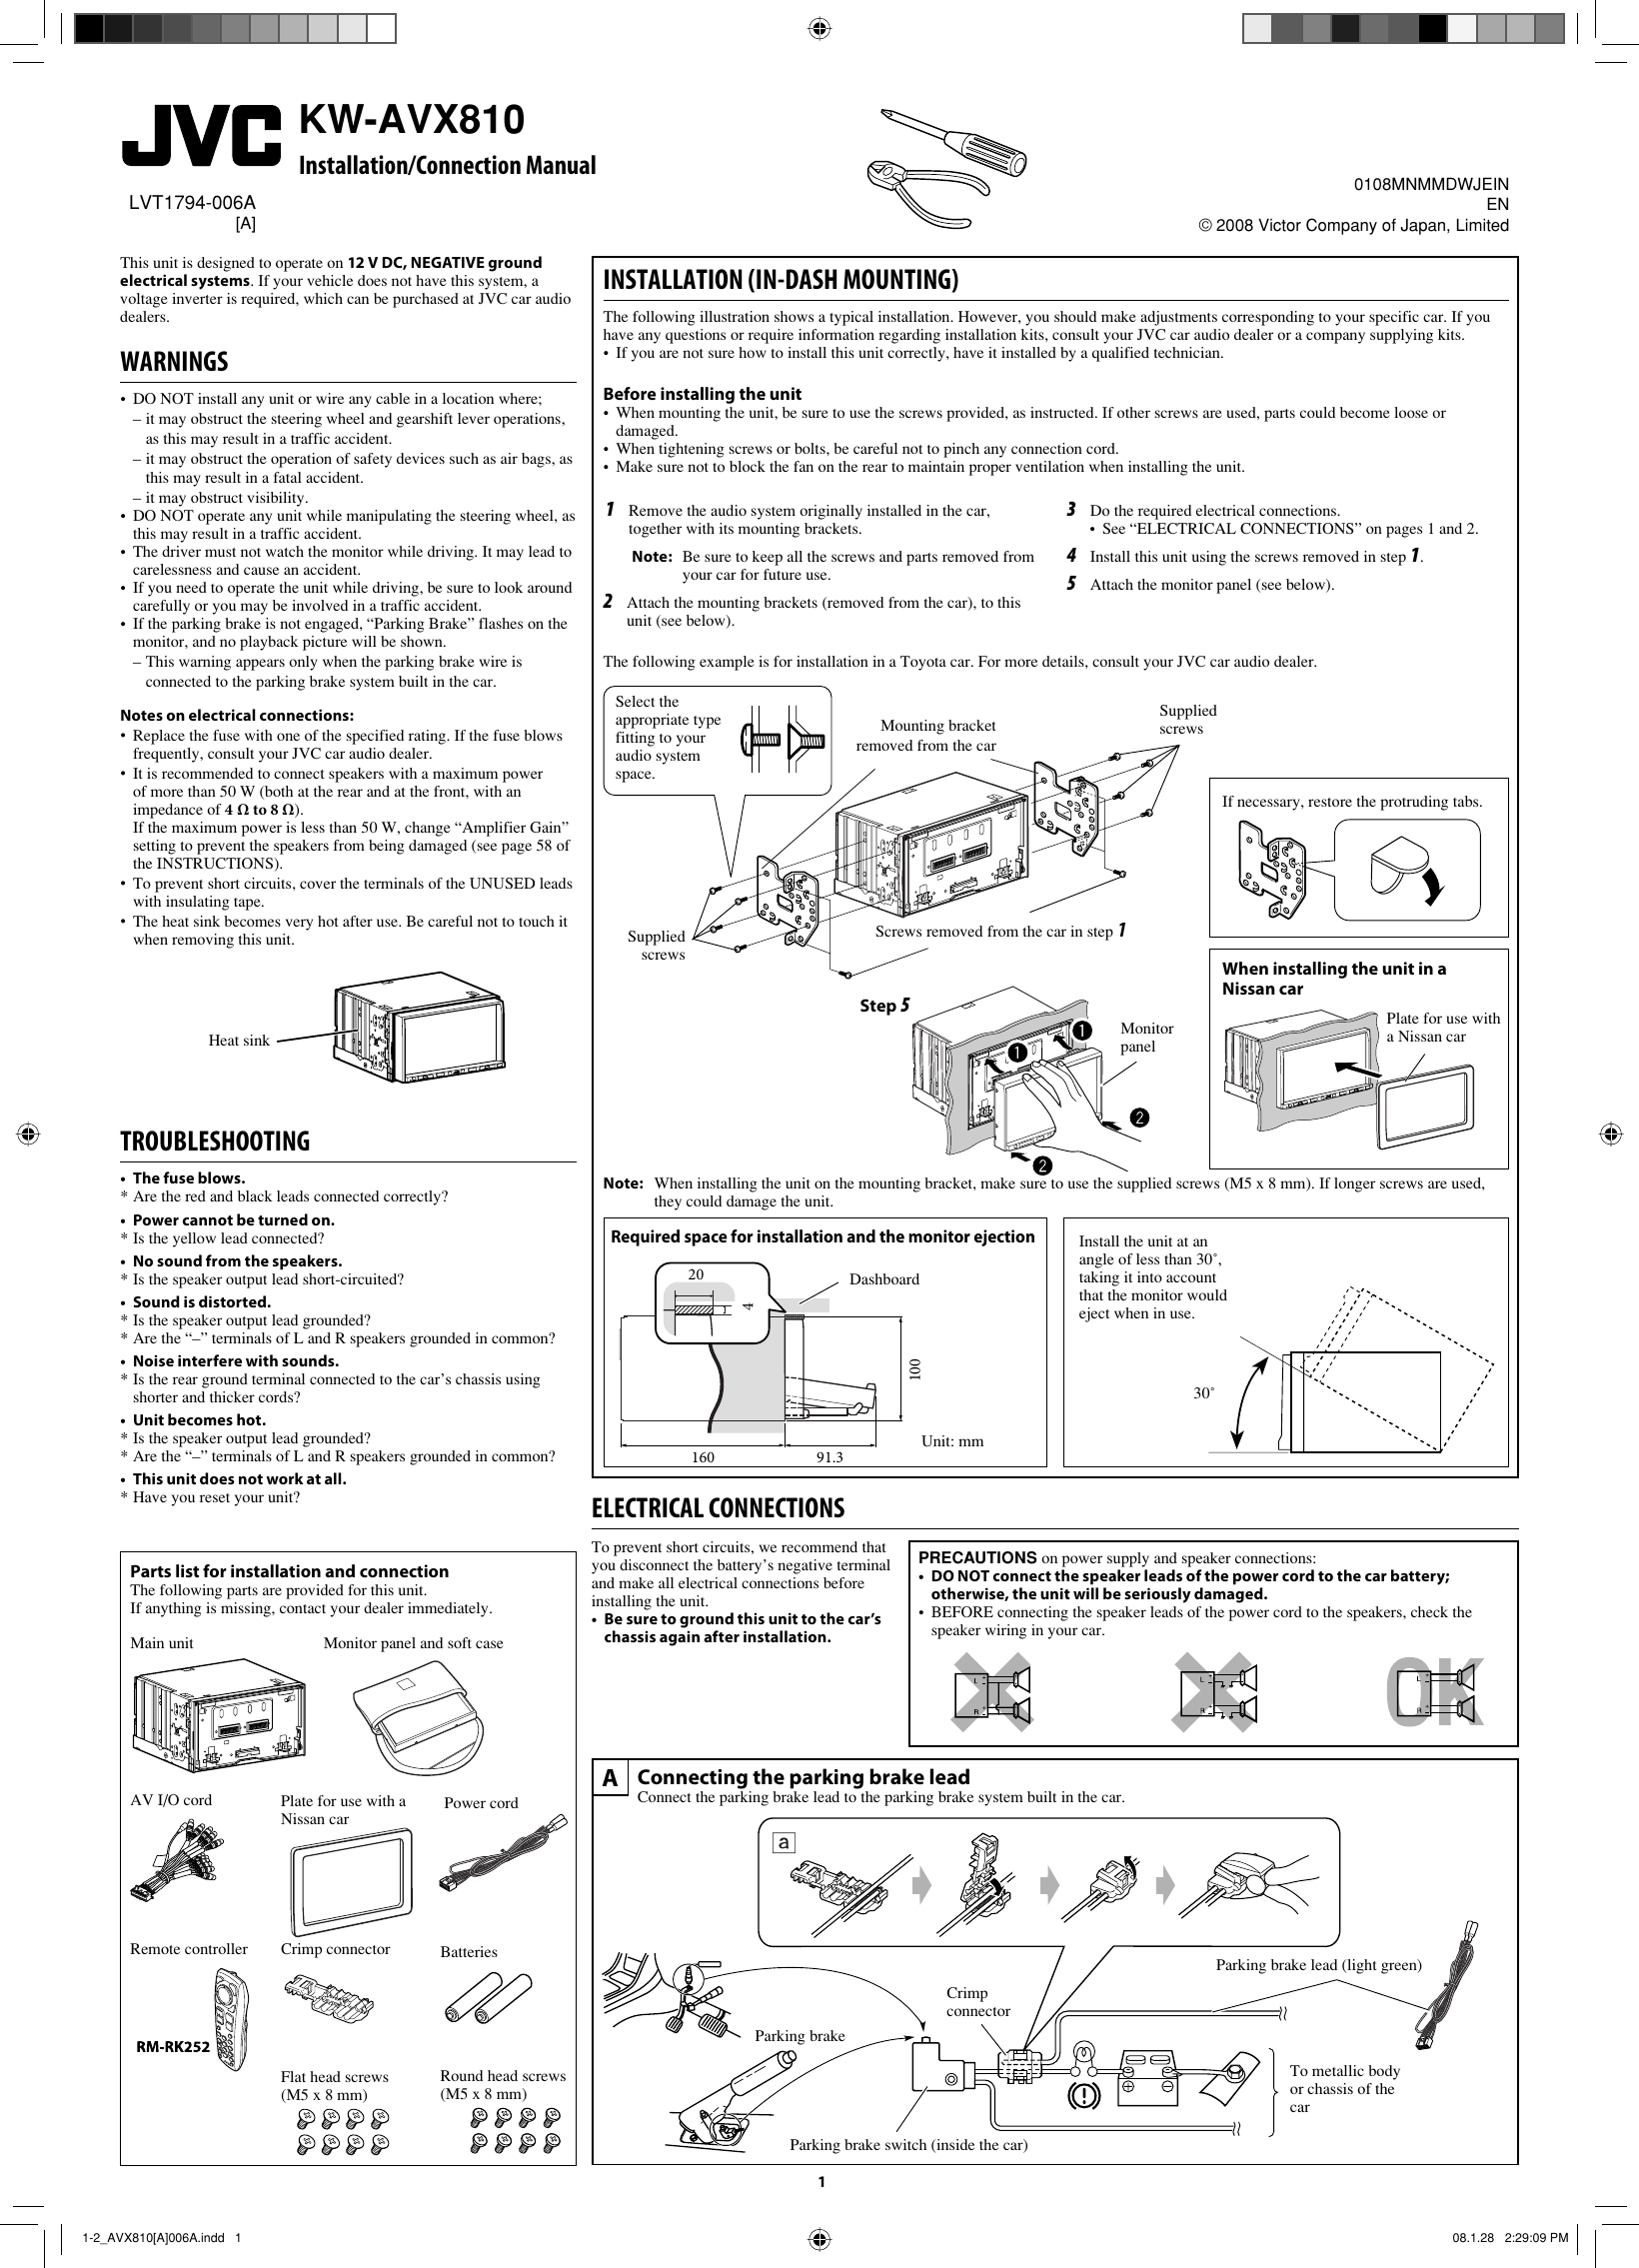 Jvc Kw Avx810 Wiring Diagram Free Download Arsenal Avx810a A Installation User Manual Lvt1794 006a